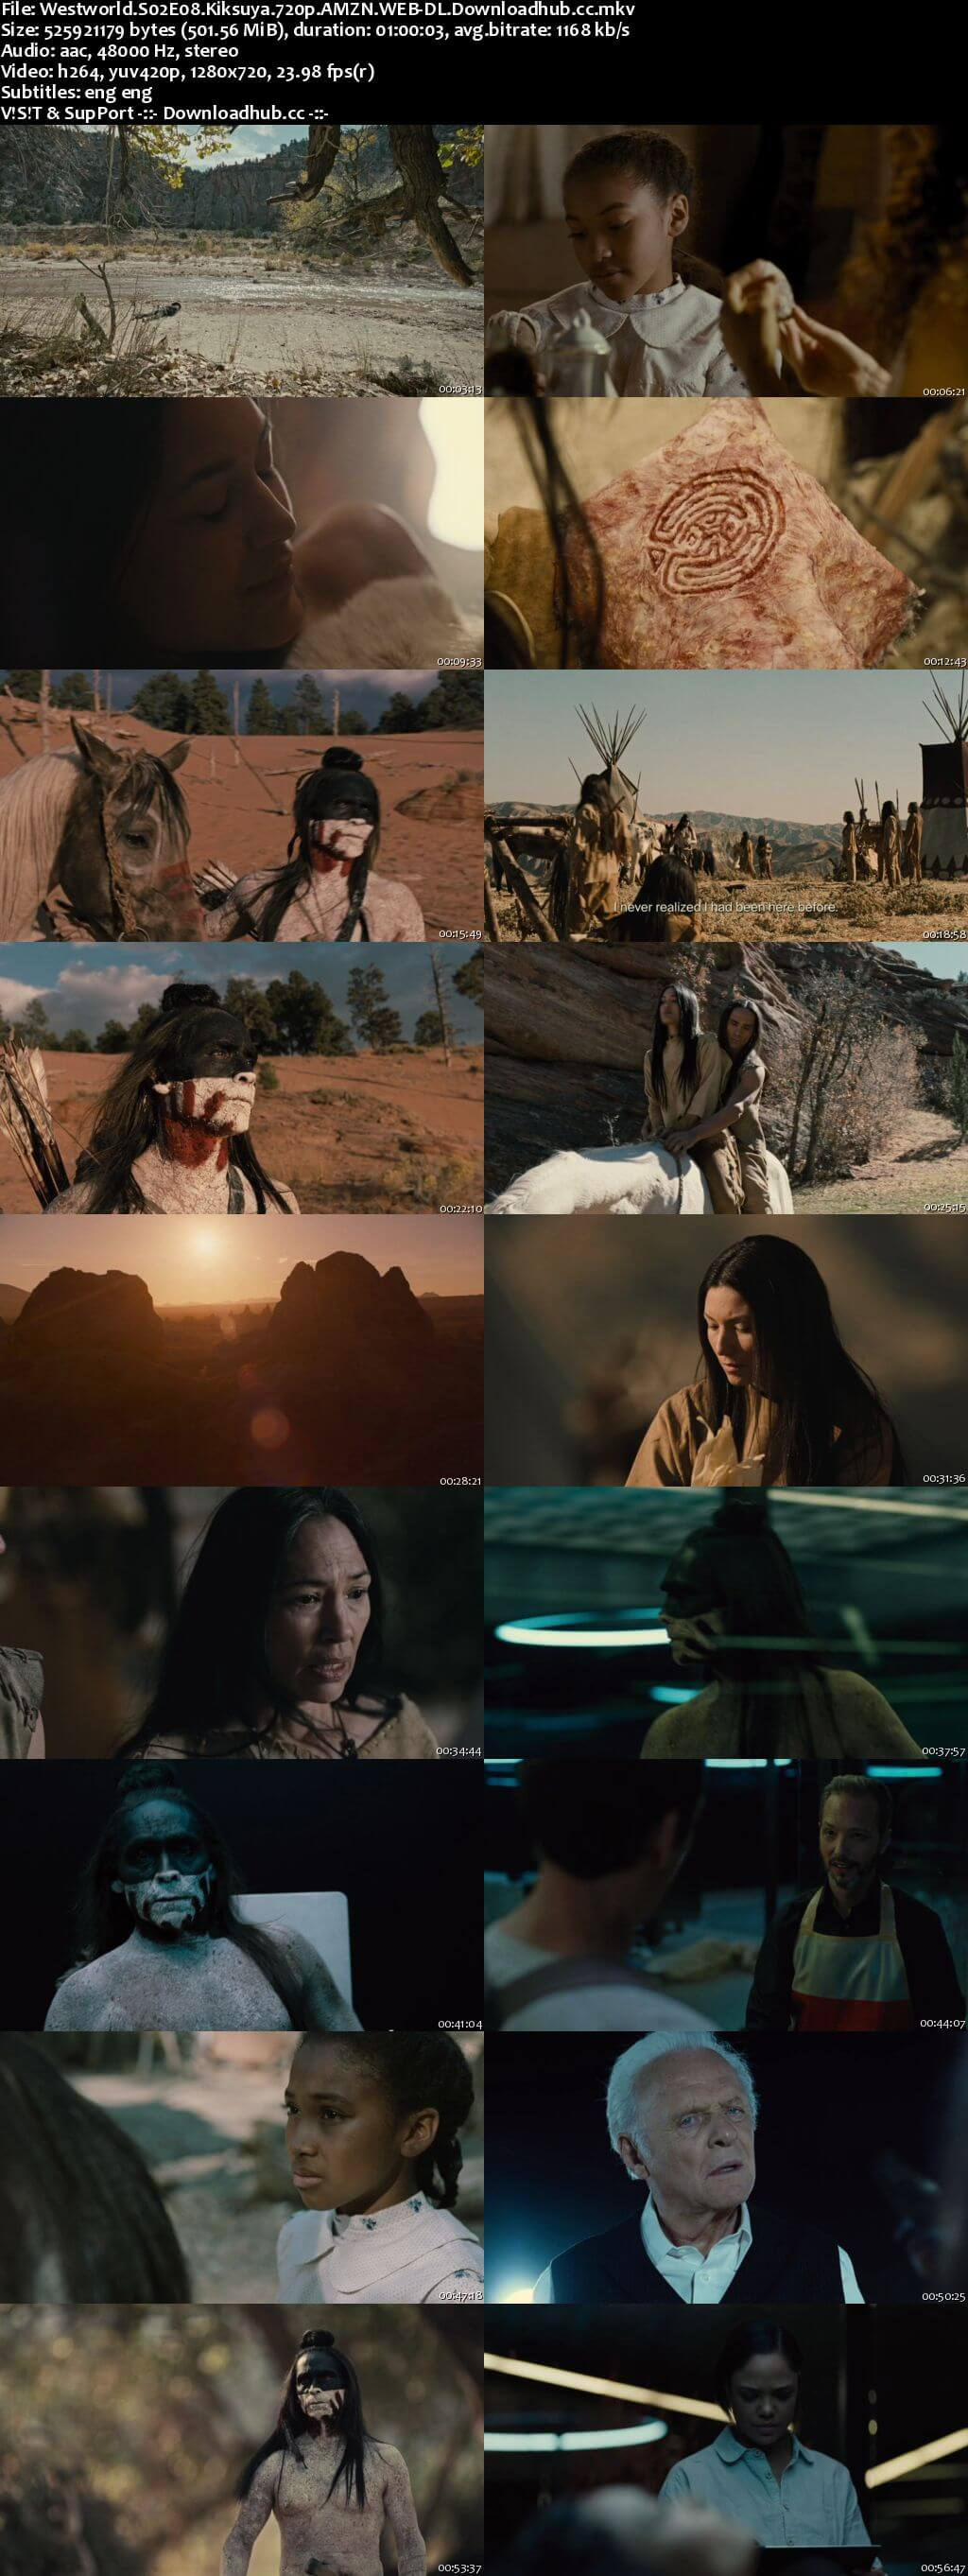 Westworld S02E08 500MB WEB-DL 720p x264 ESubs